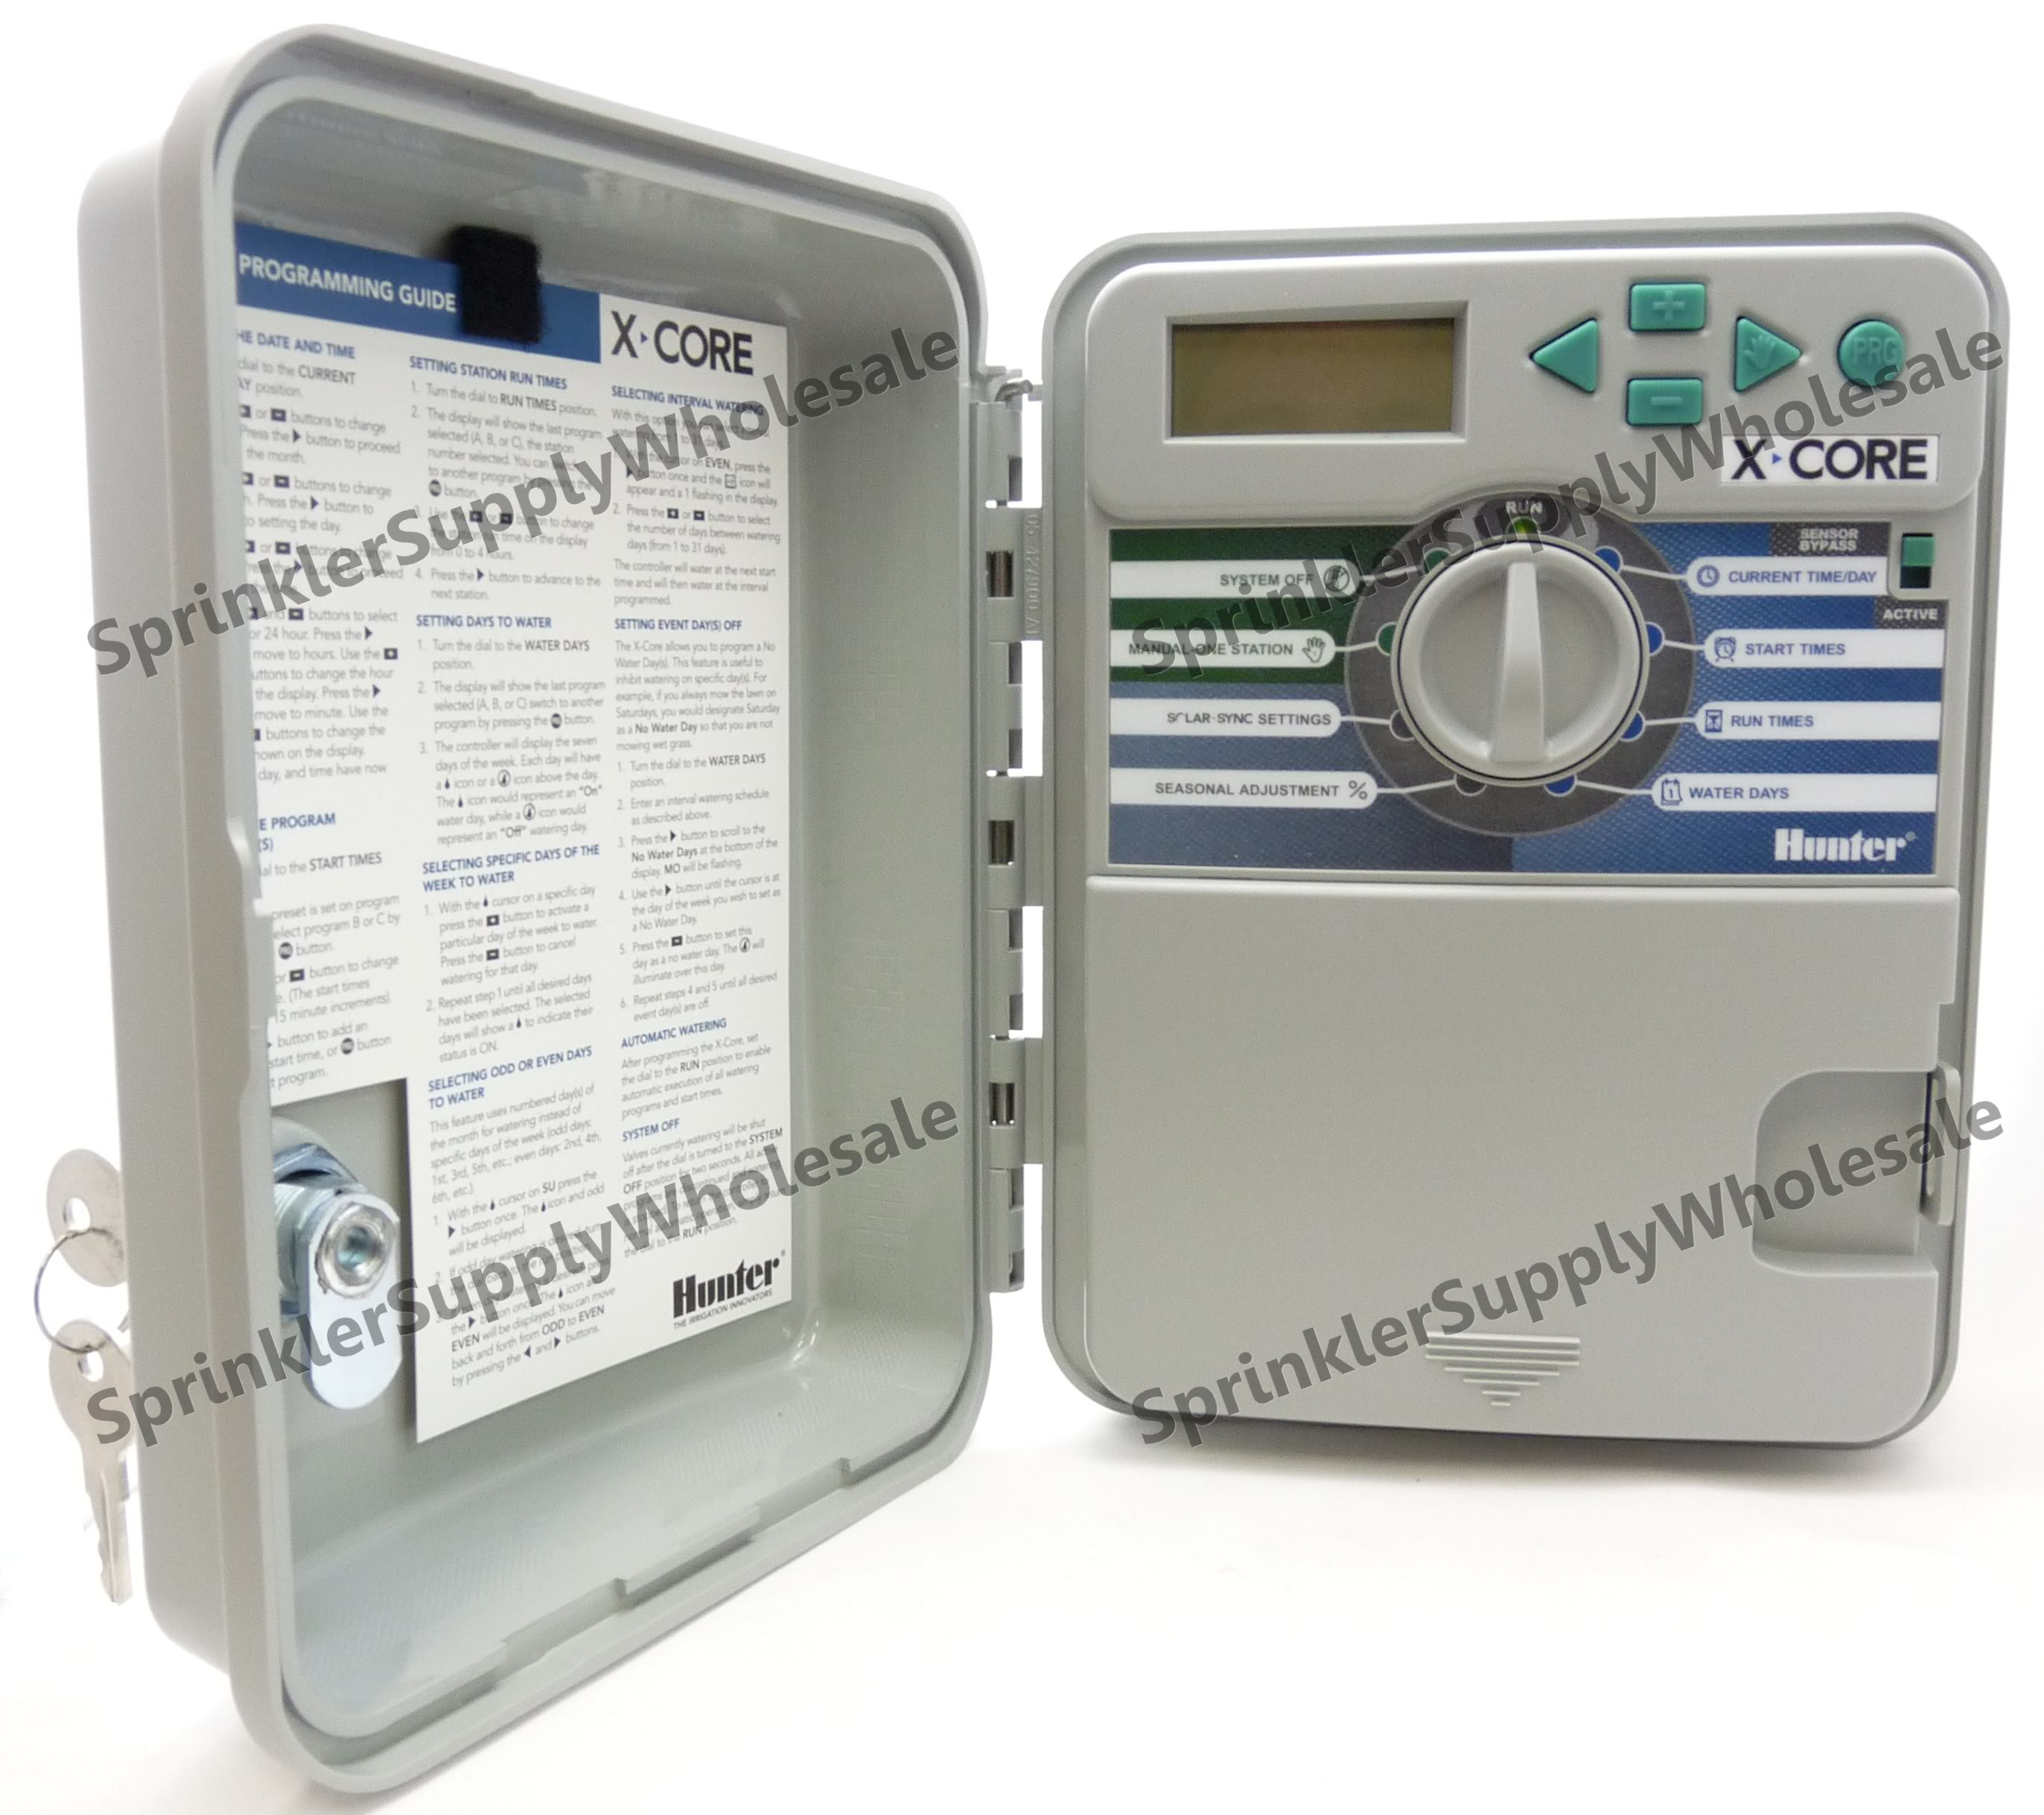 Hunter X Core Outdoor Controller Timer 4 6 Or 8 Stations 120v Xcore On Pendant Station Wiring Diagram Zone Clock